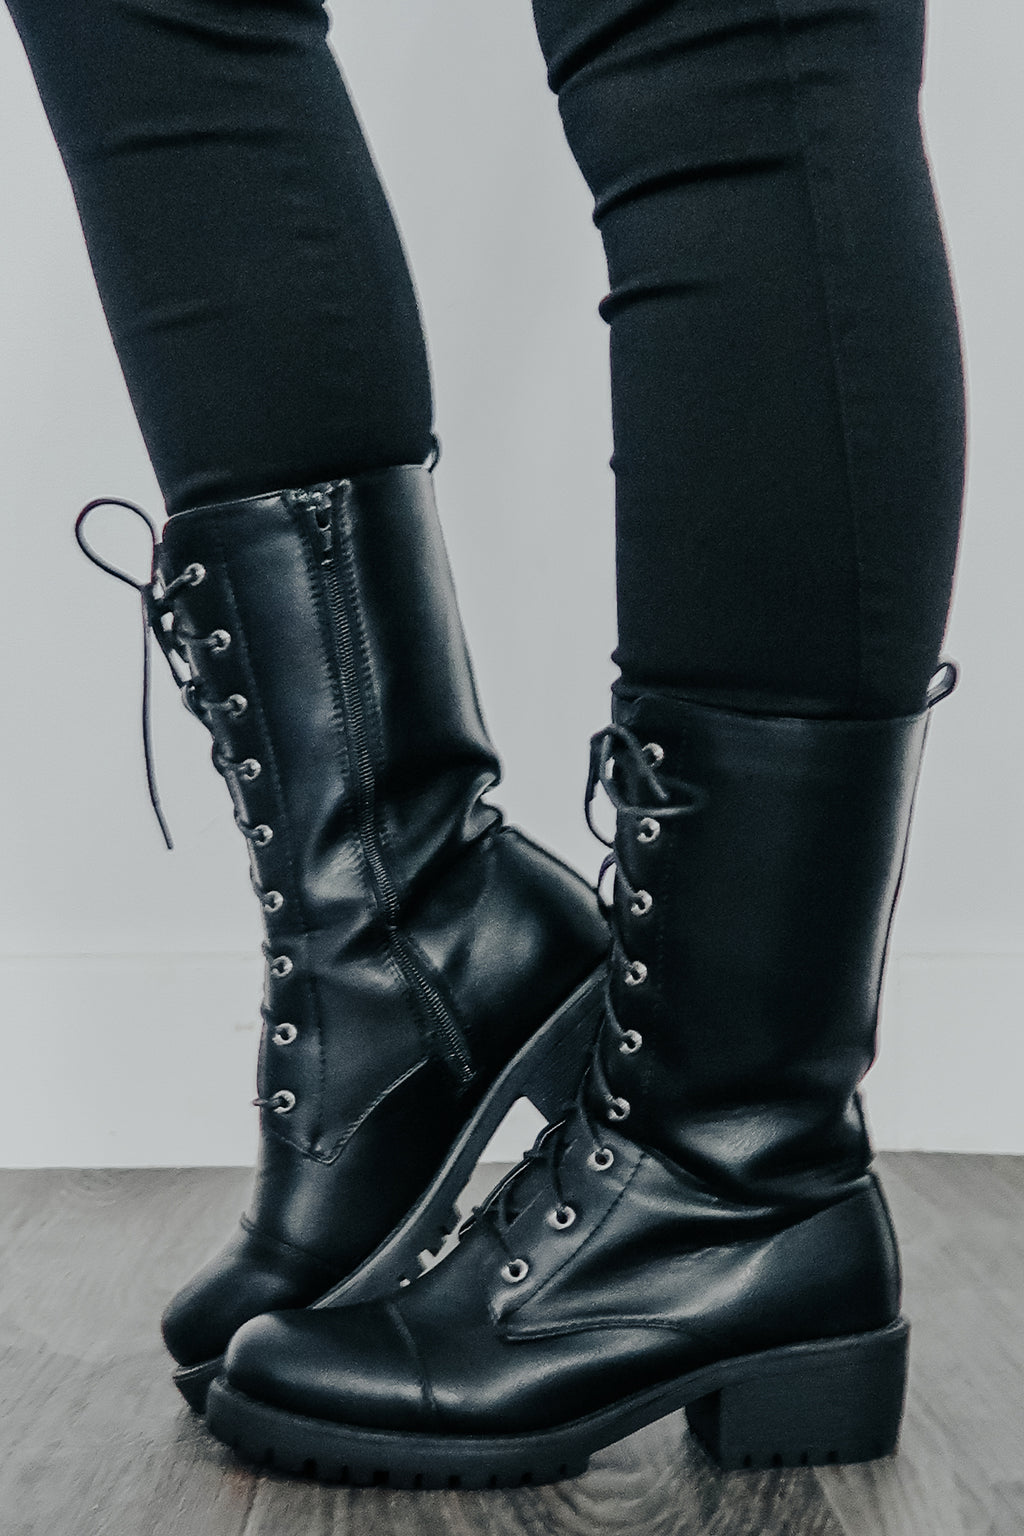 Full Of Wonder Boots: Black